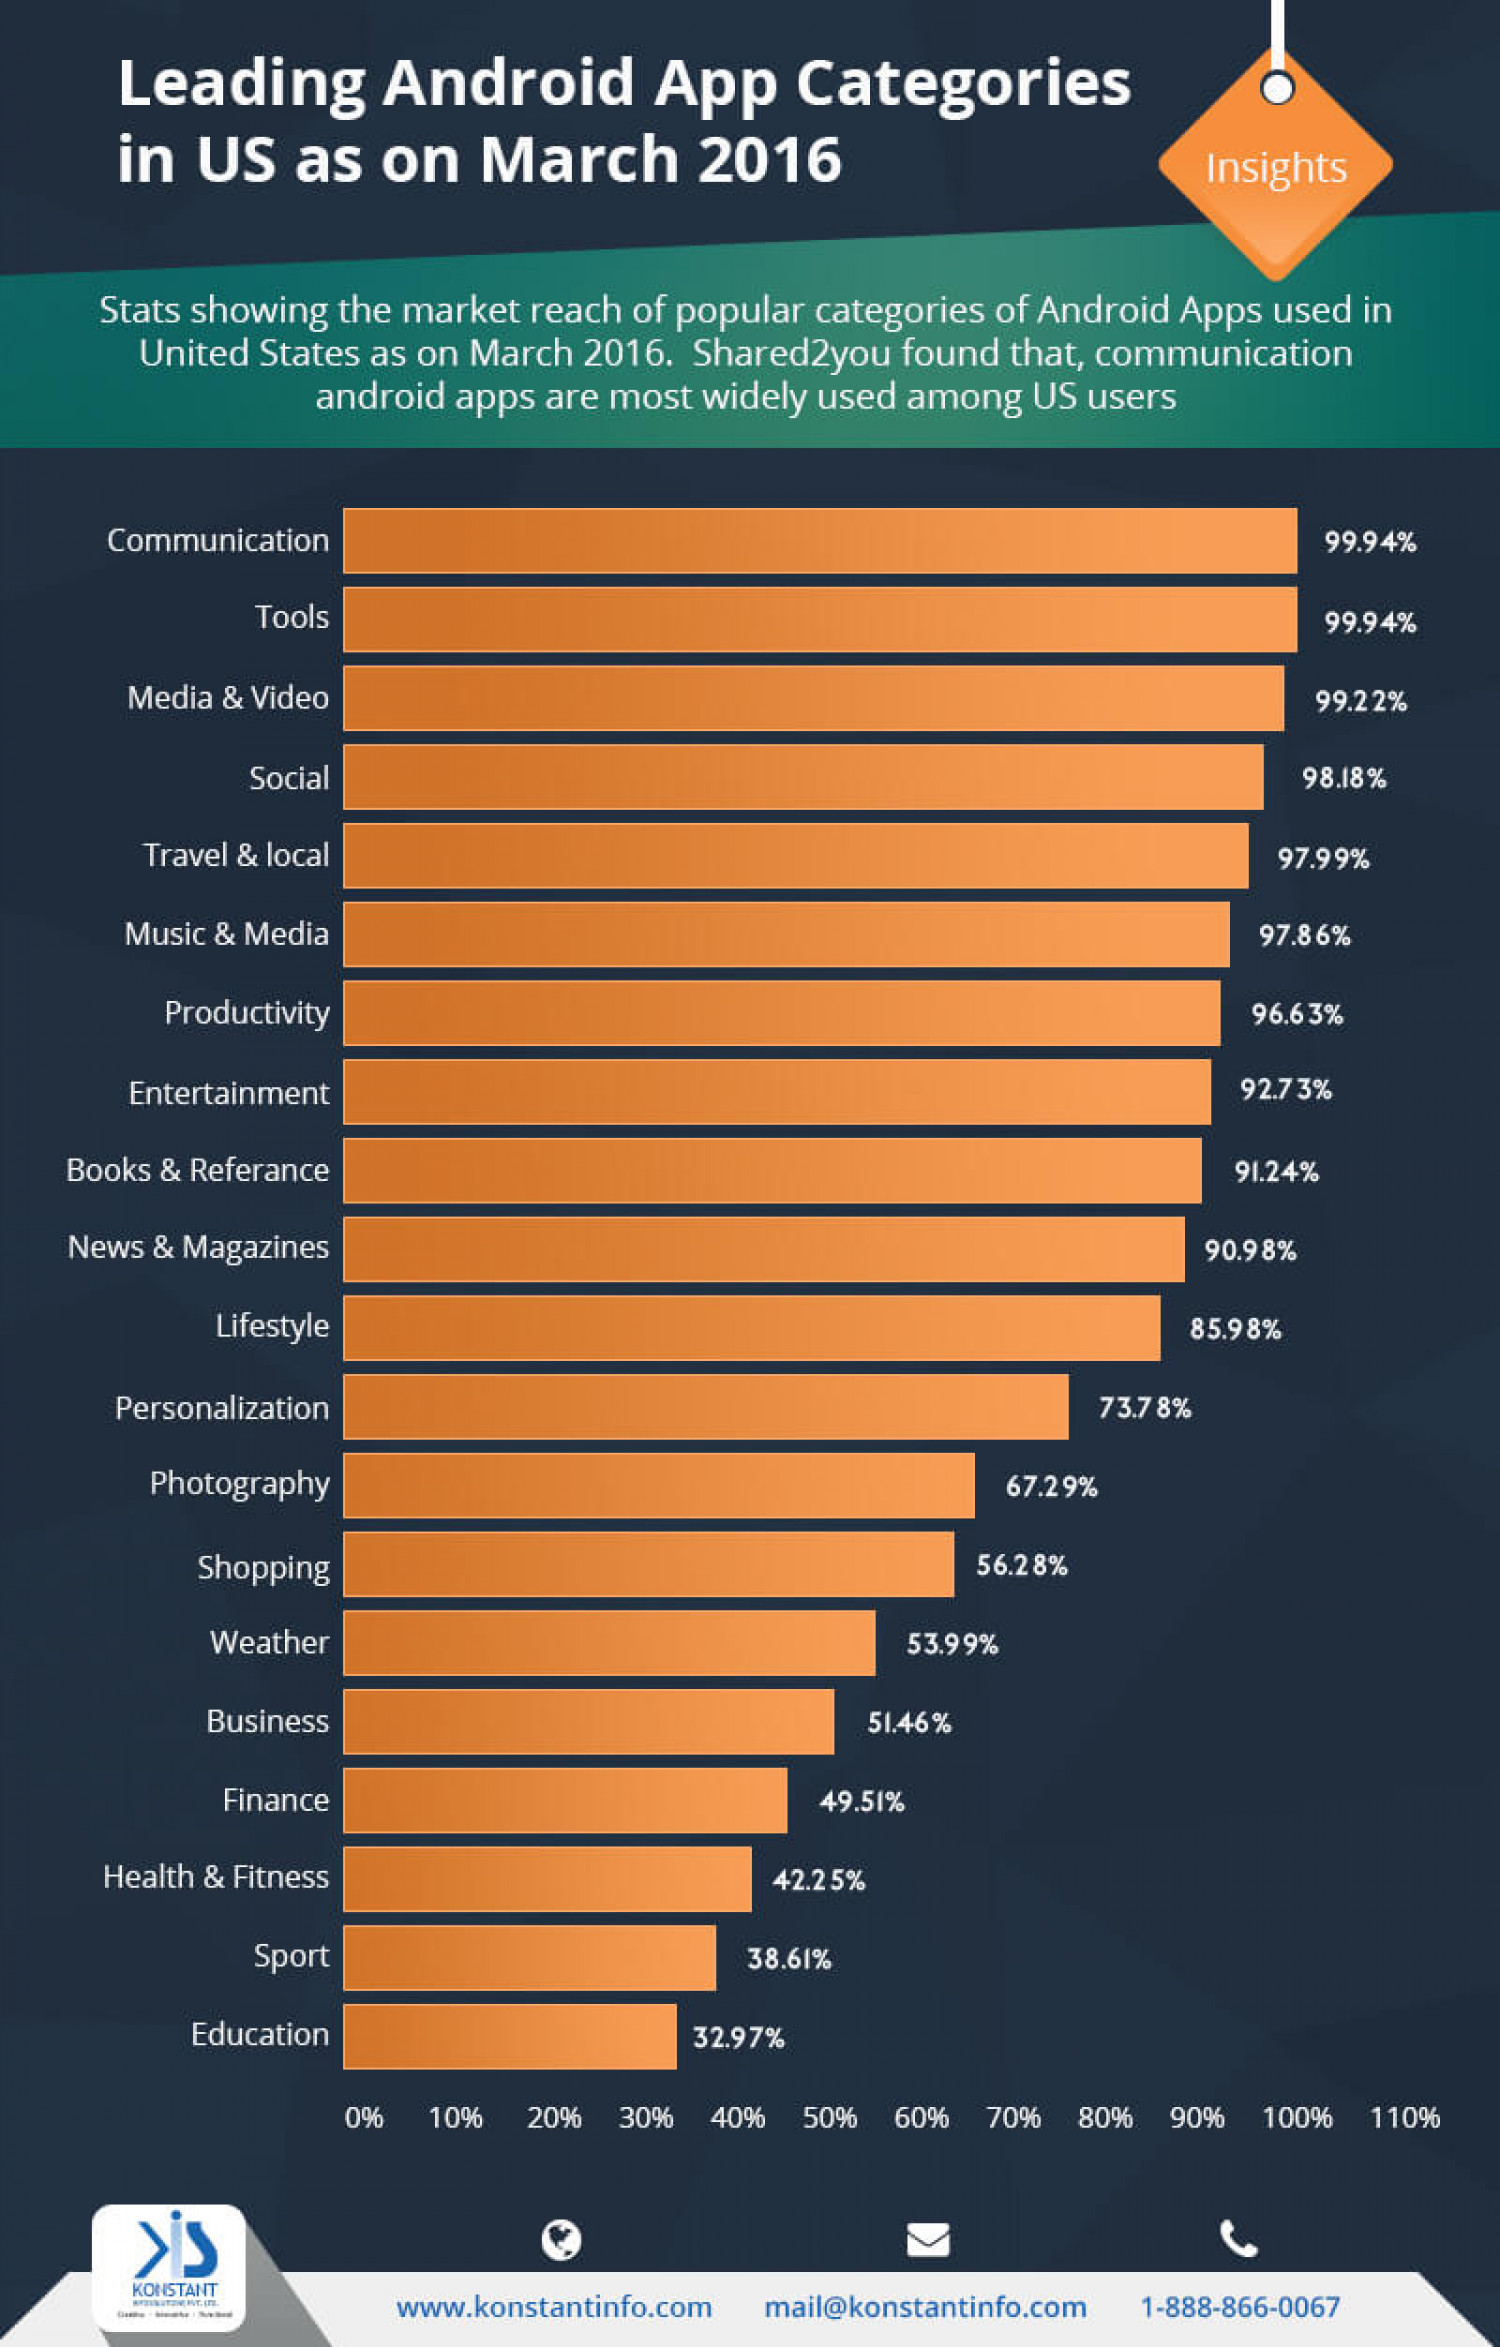 Leading Android App Categories in US as on March 2016 Infographic